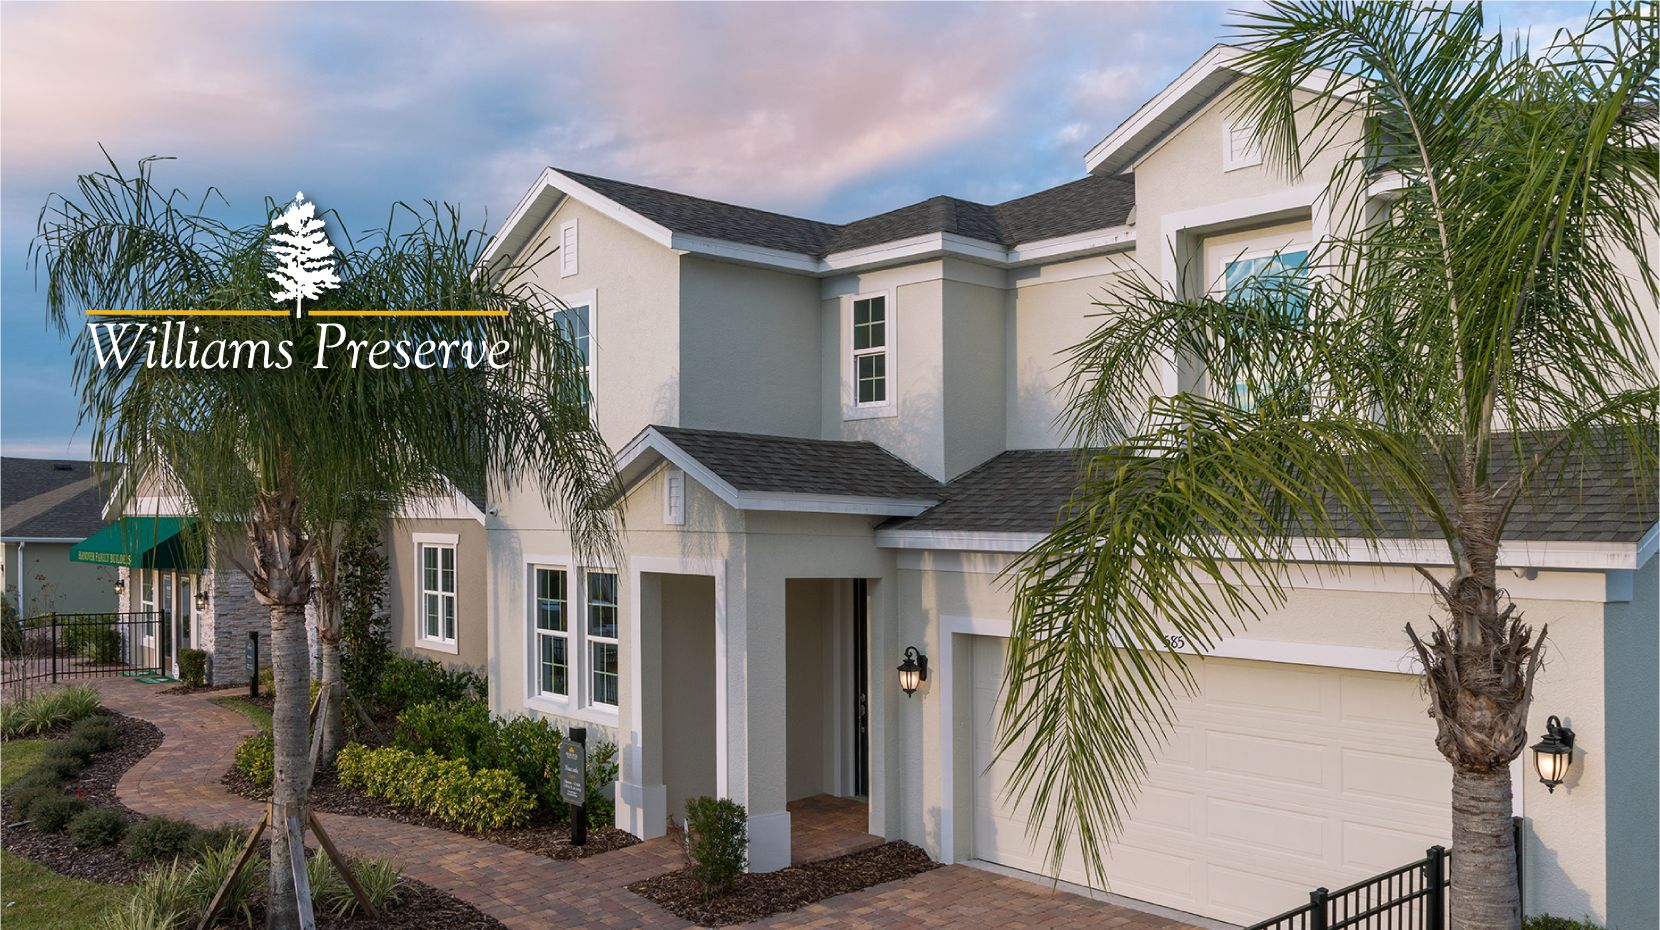 Williams Preserve Model Homes